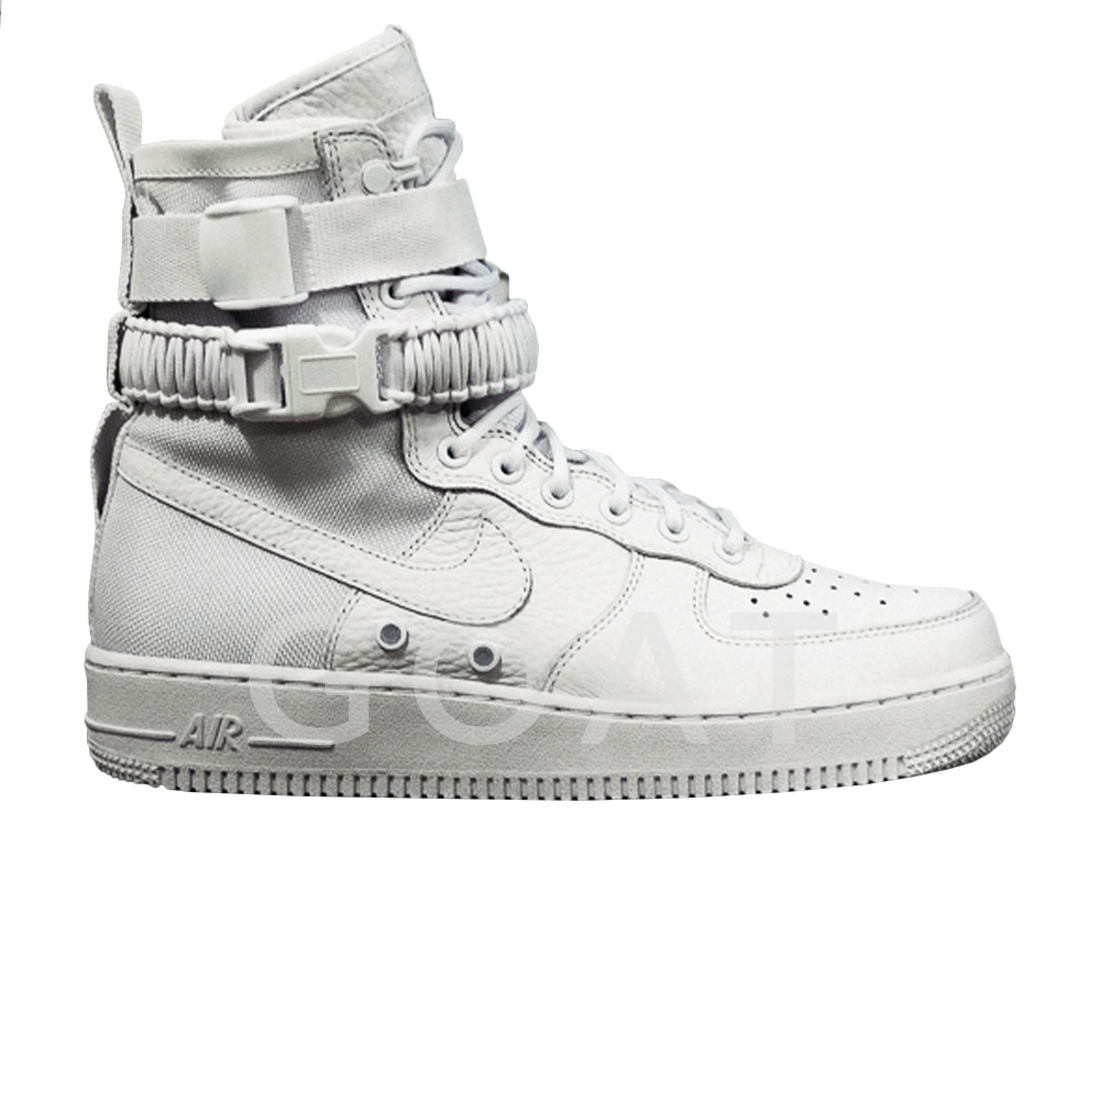 31d37cd01894 Special Field Air Force 1  QS  - Nike - 903270 100 - White White